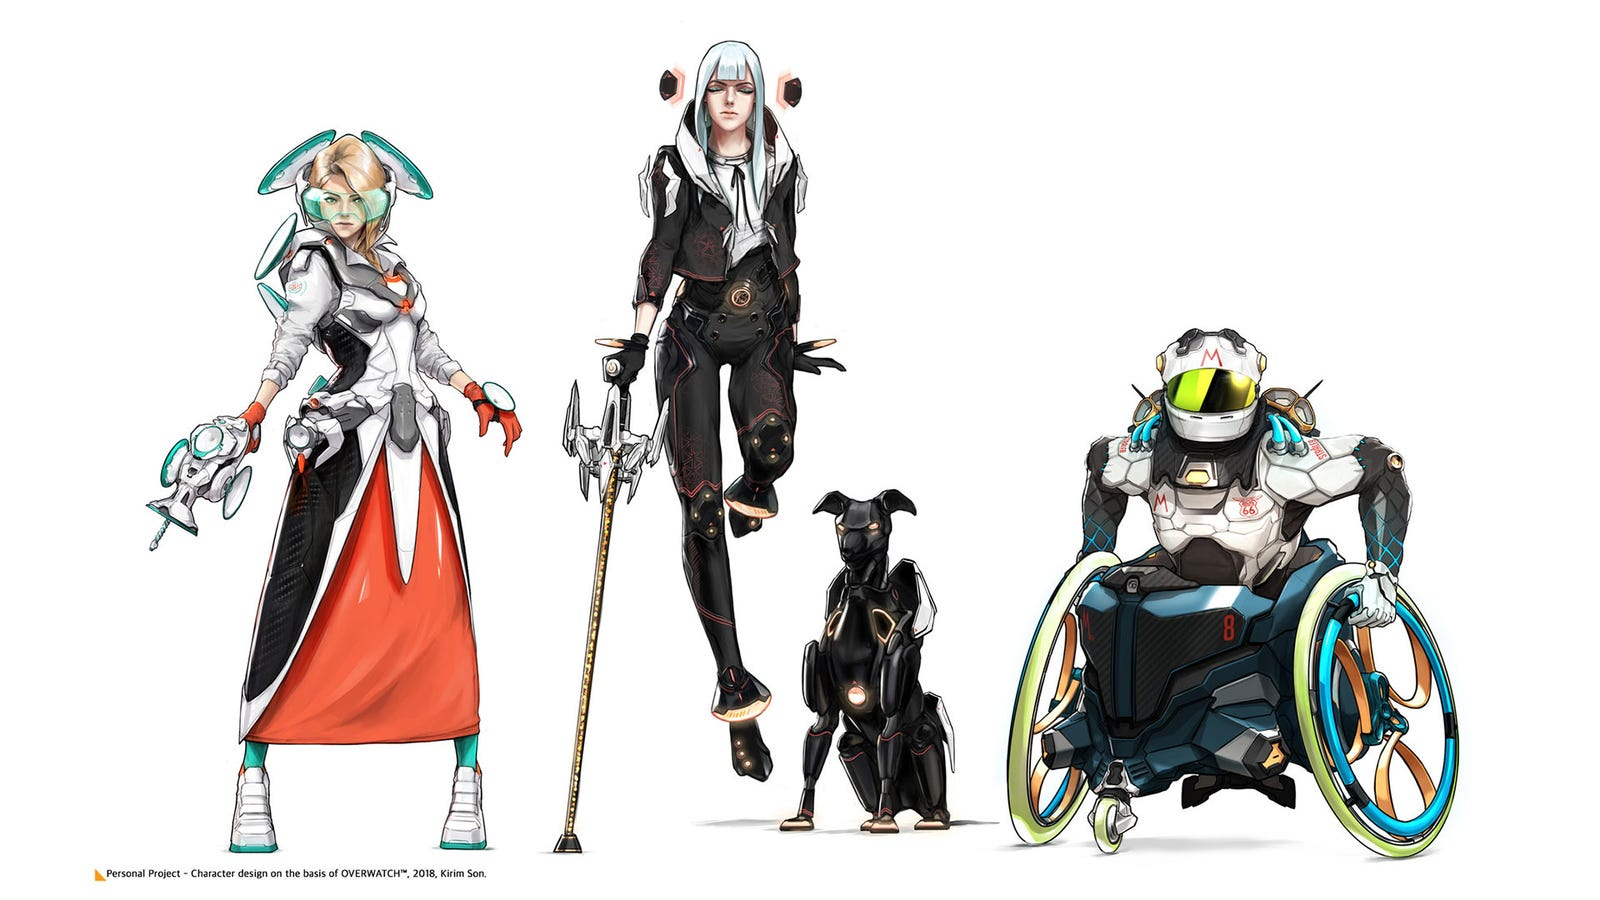 Fine Art: A Cool Set Of New Overwatch Character Designs